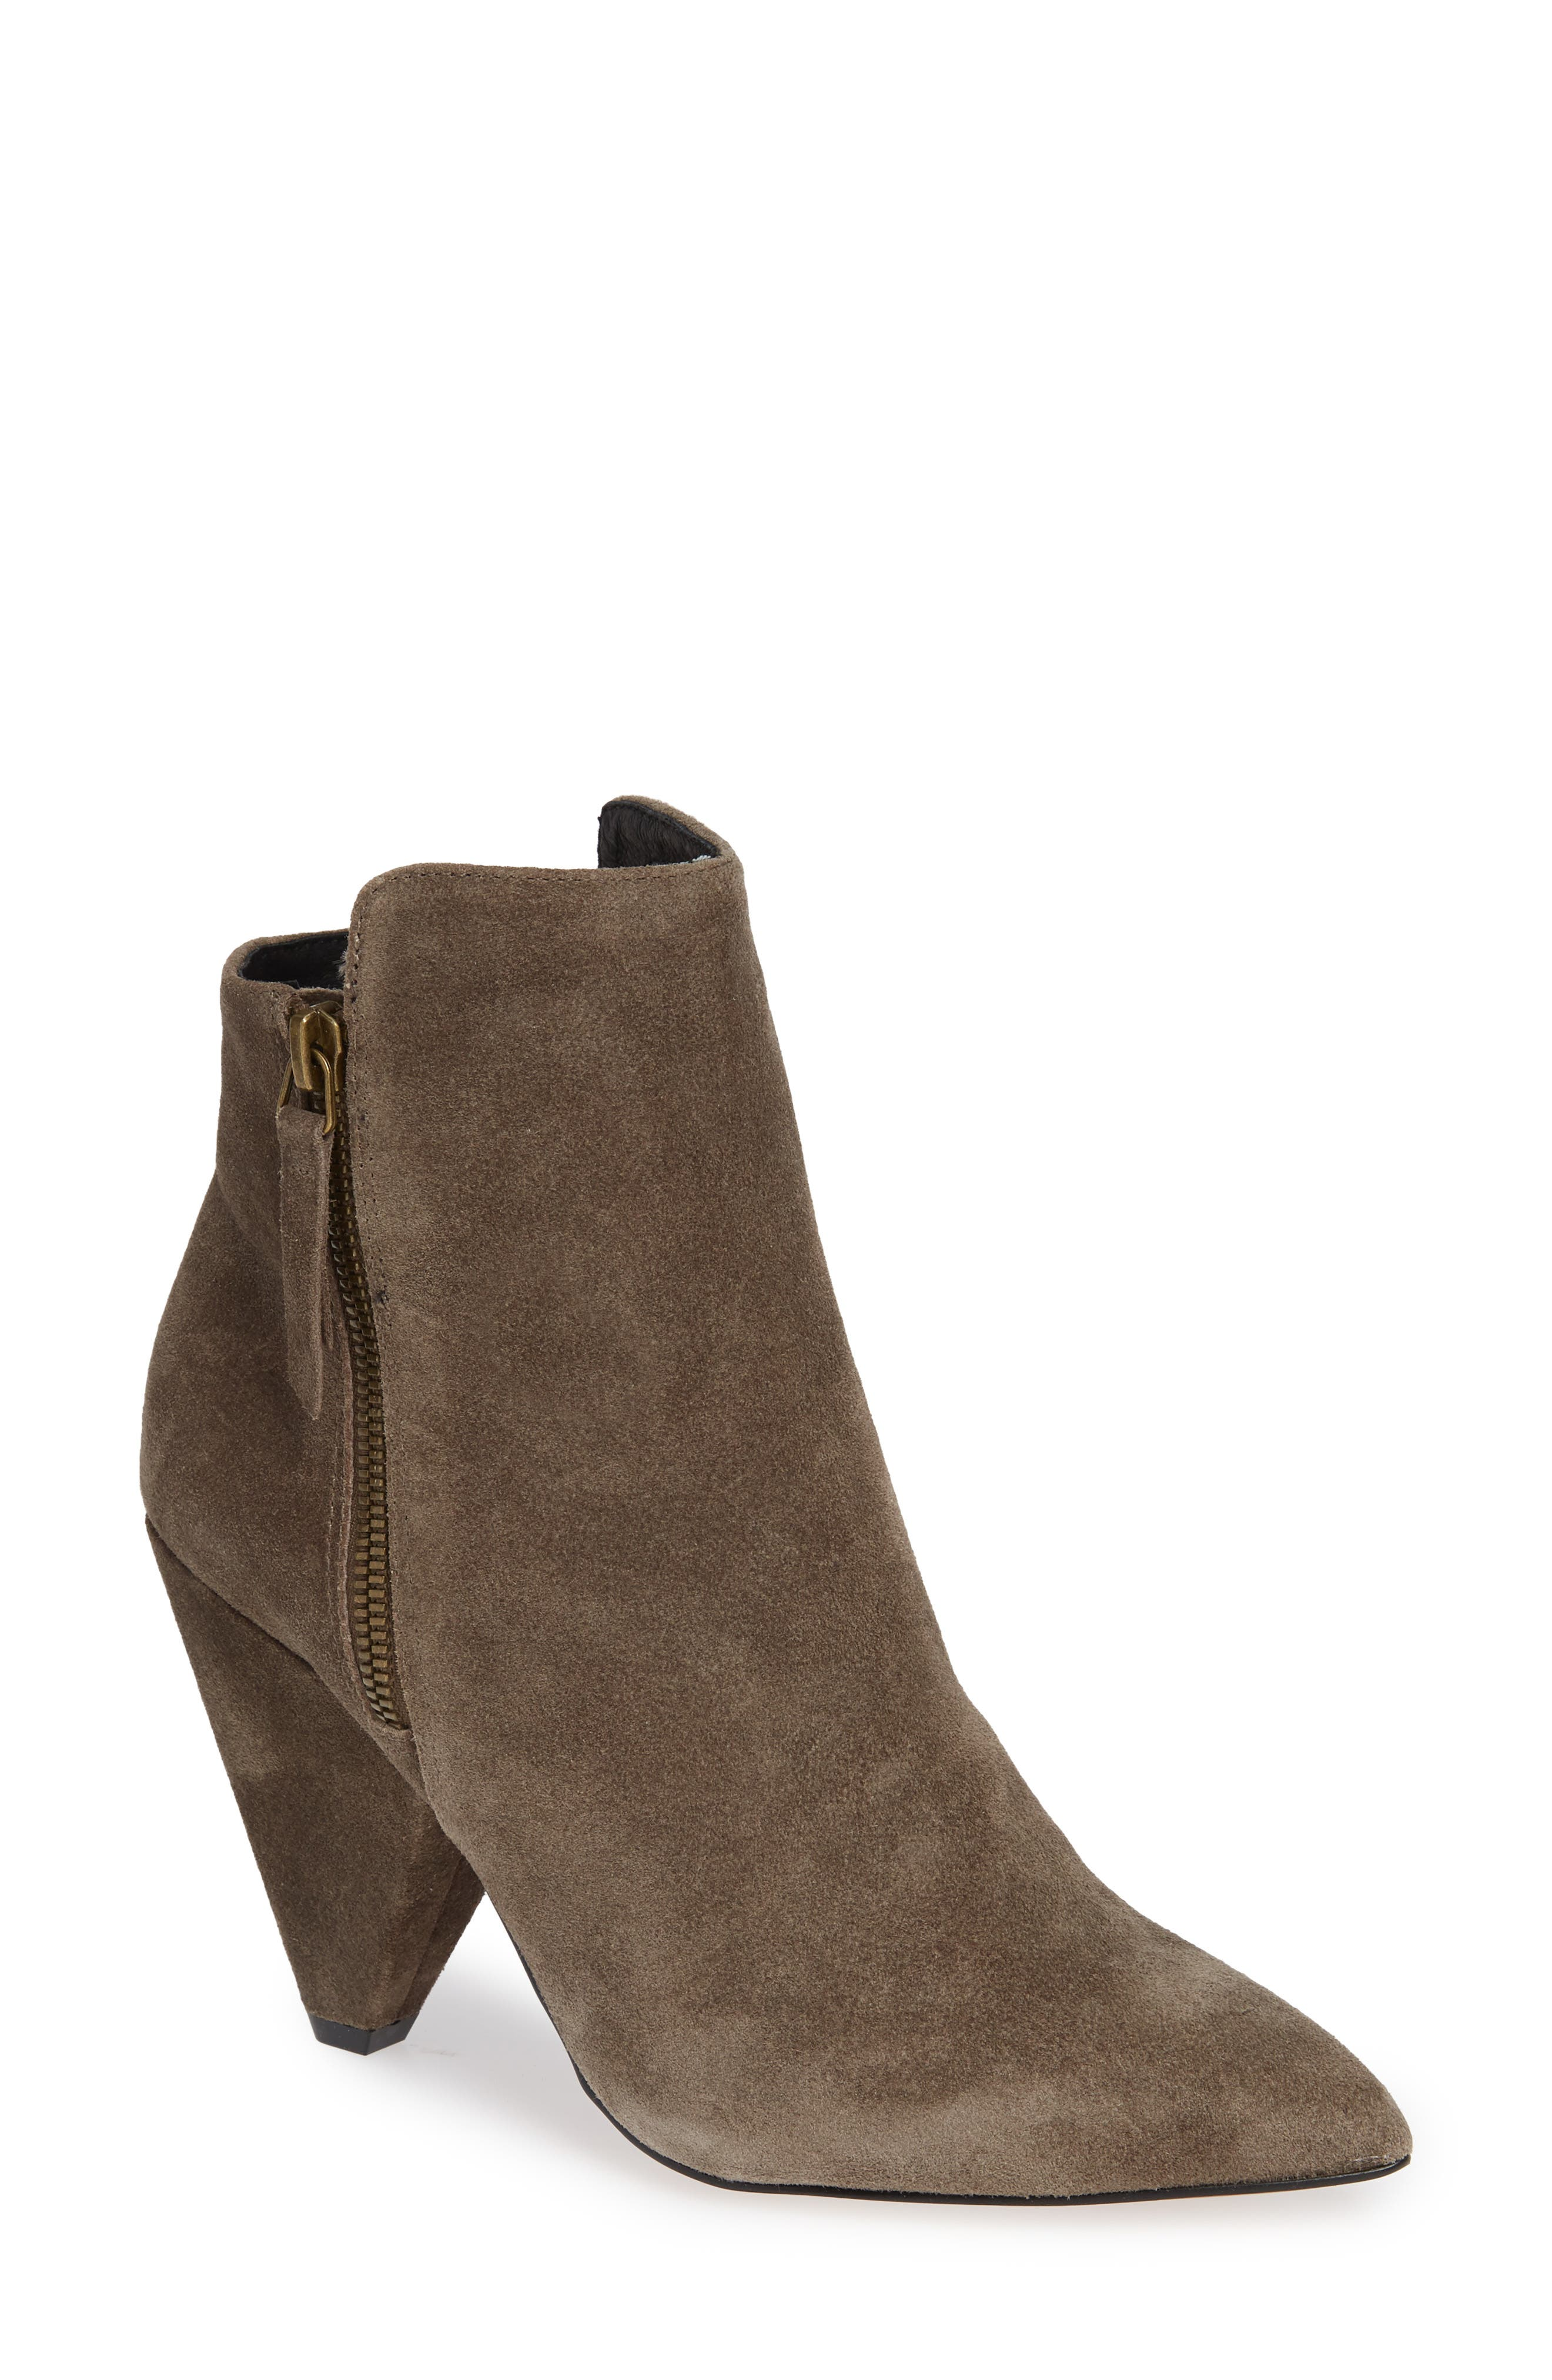 KENNETH COLE NEW YORK Galway Bootie, Main, color, 063